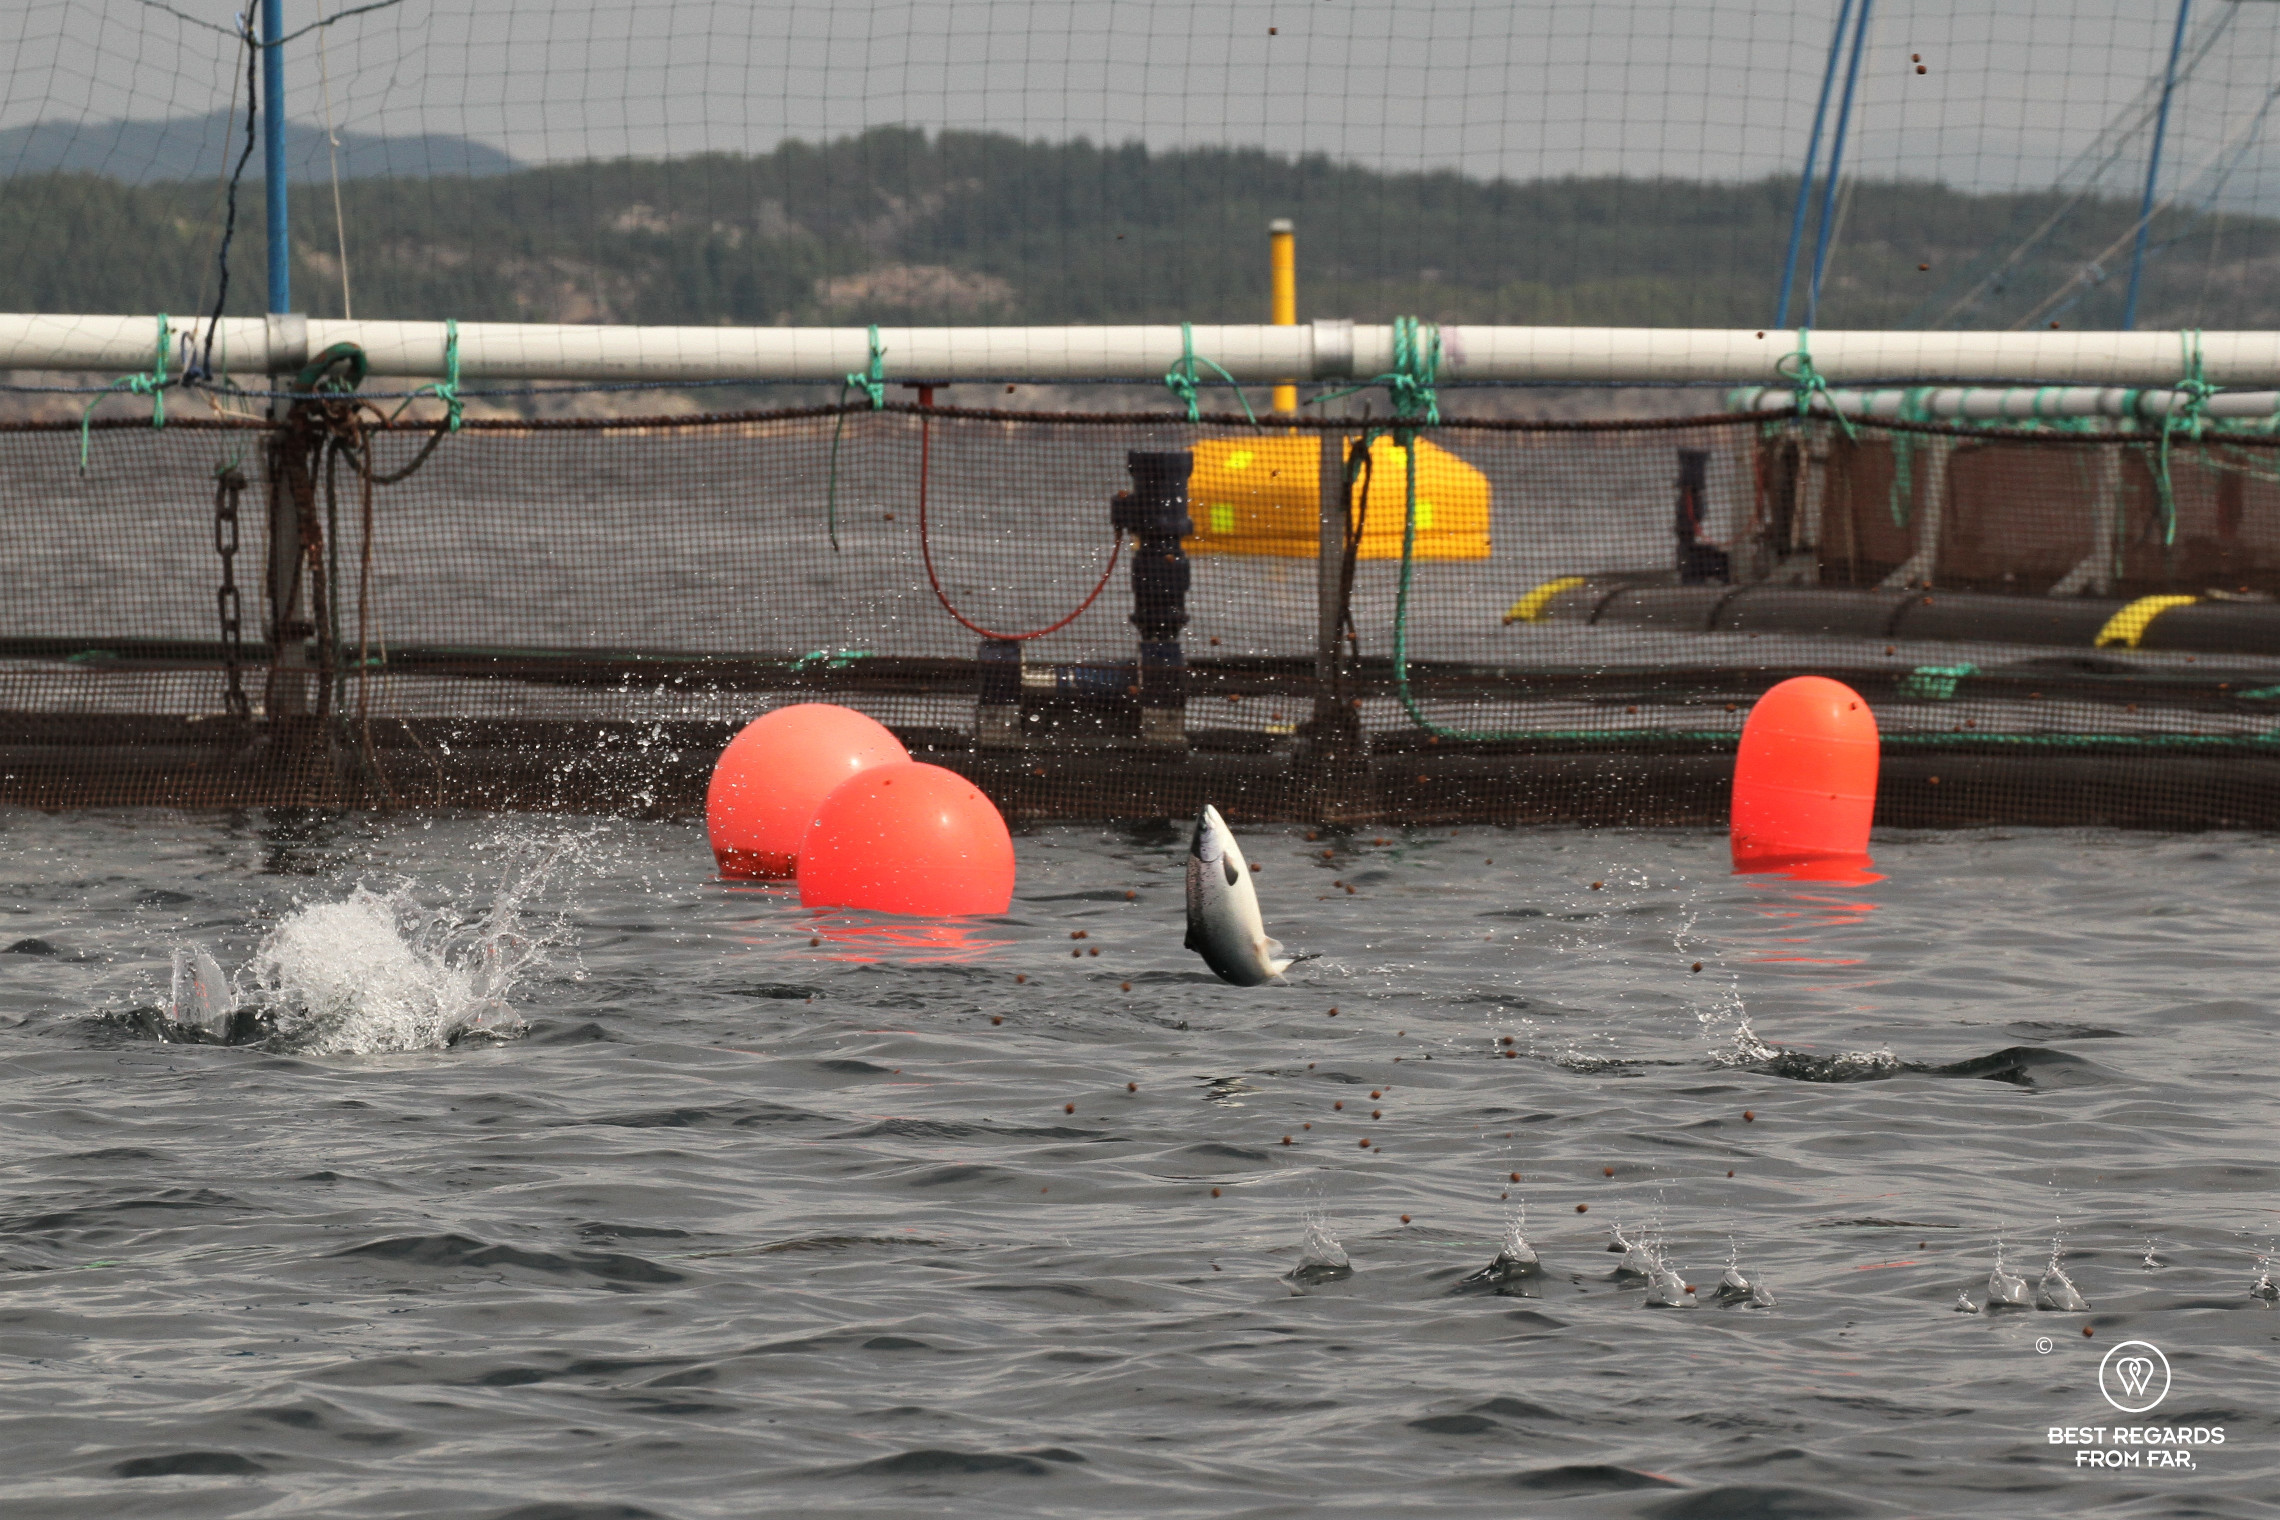 Salmon jumping for food in a salmon farm off Bergen, Norway